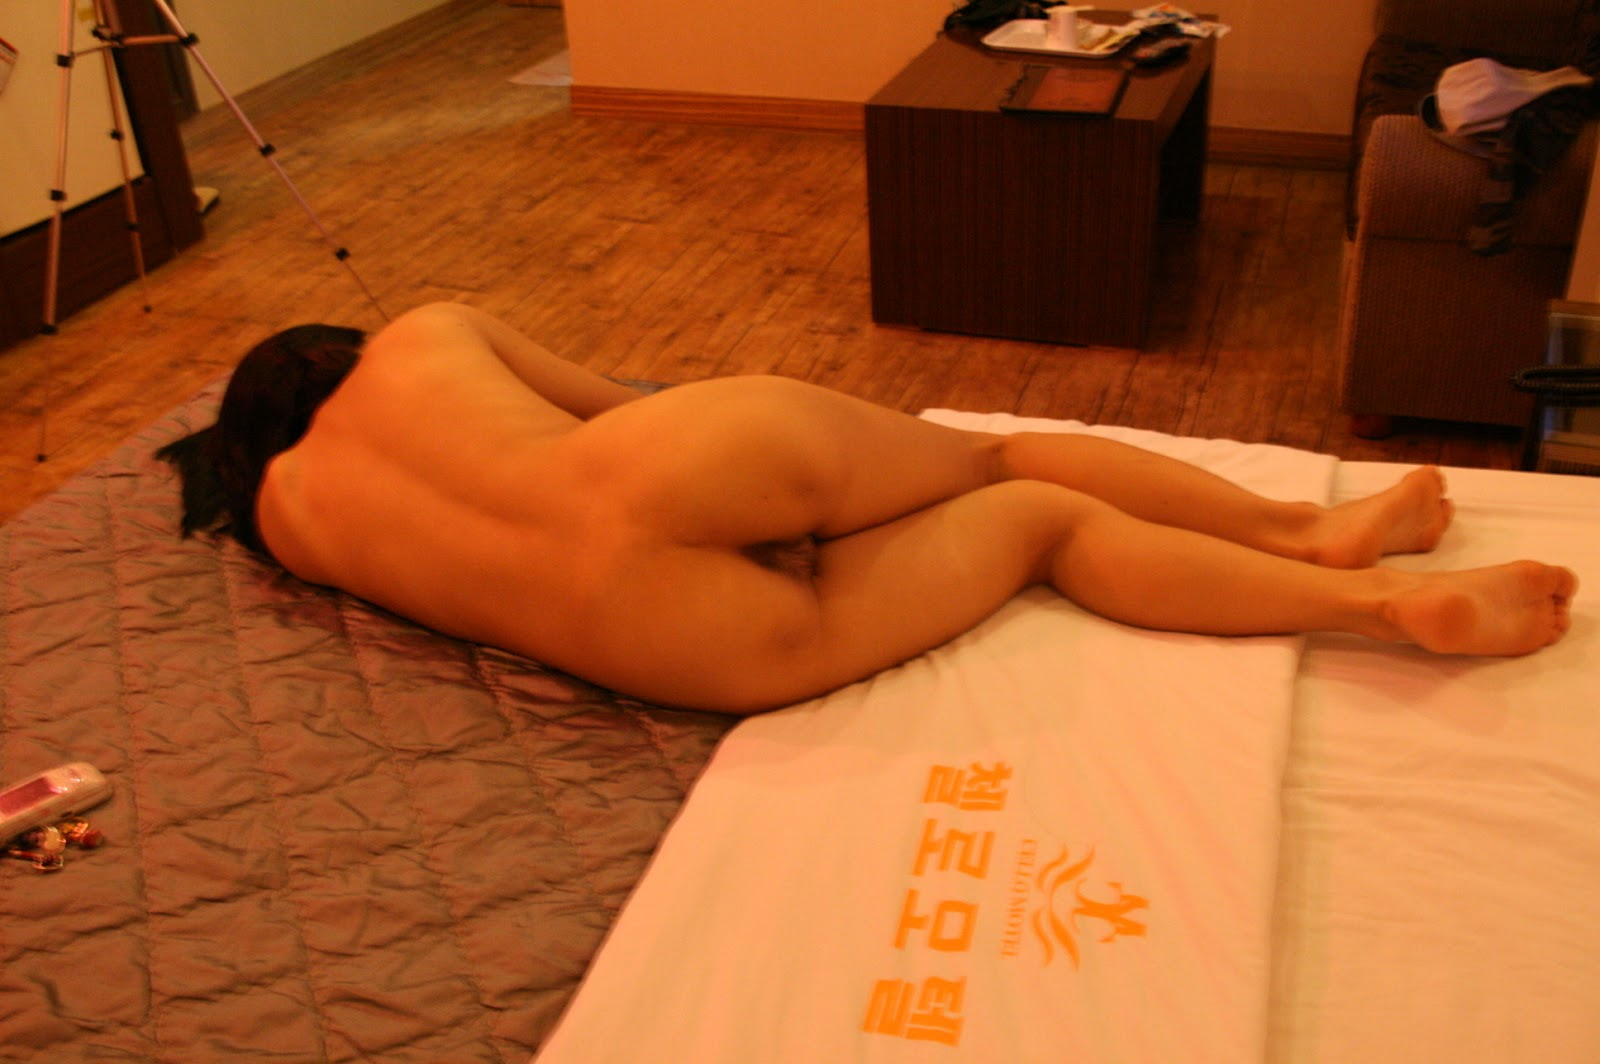 Super Cute & Lovely Korean early 30s wife's close up pussy, anus photos leaked